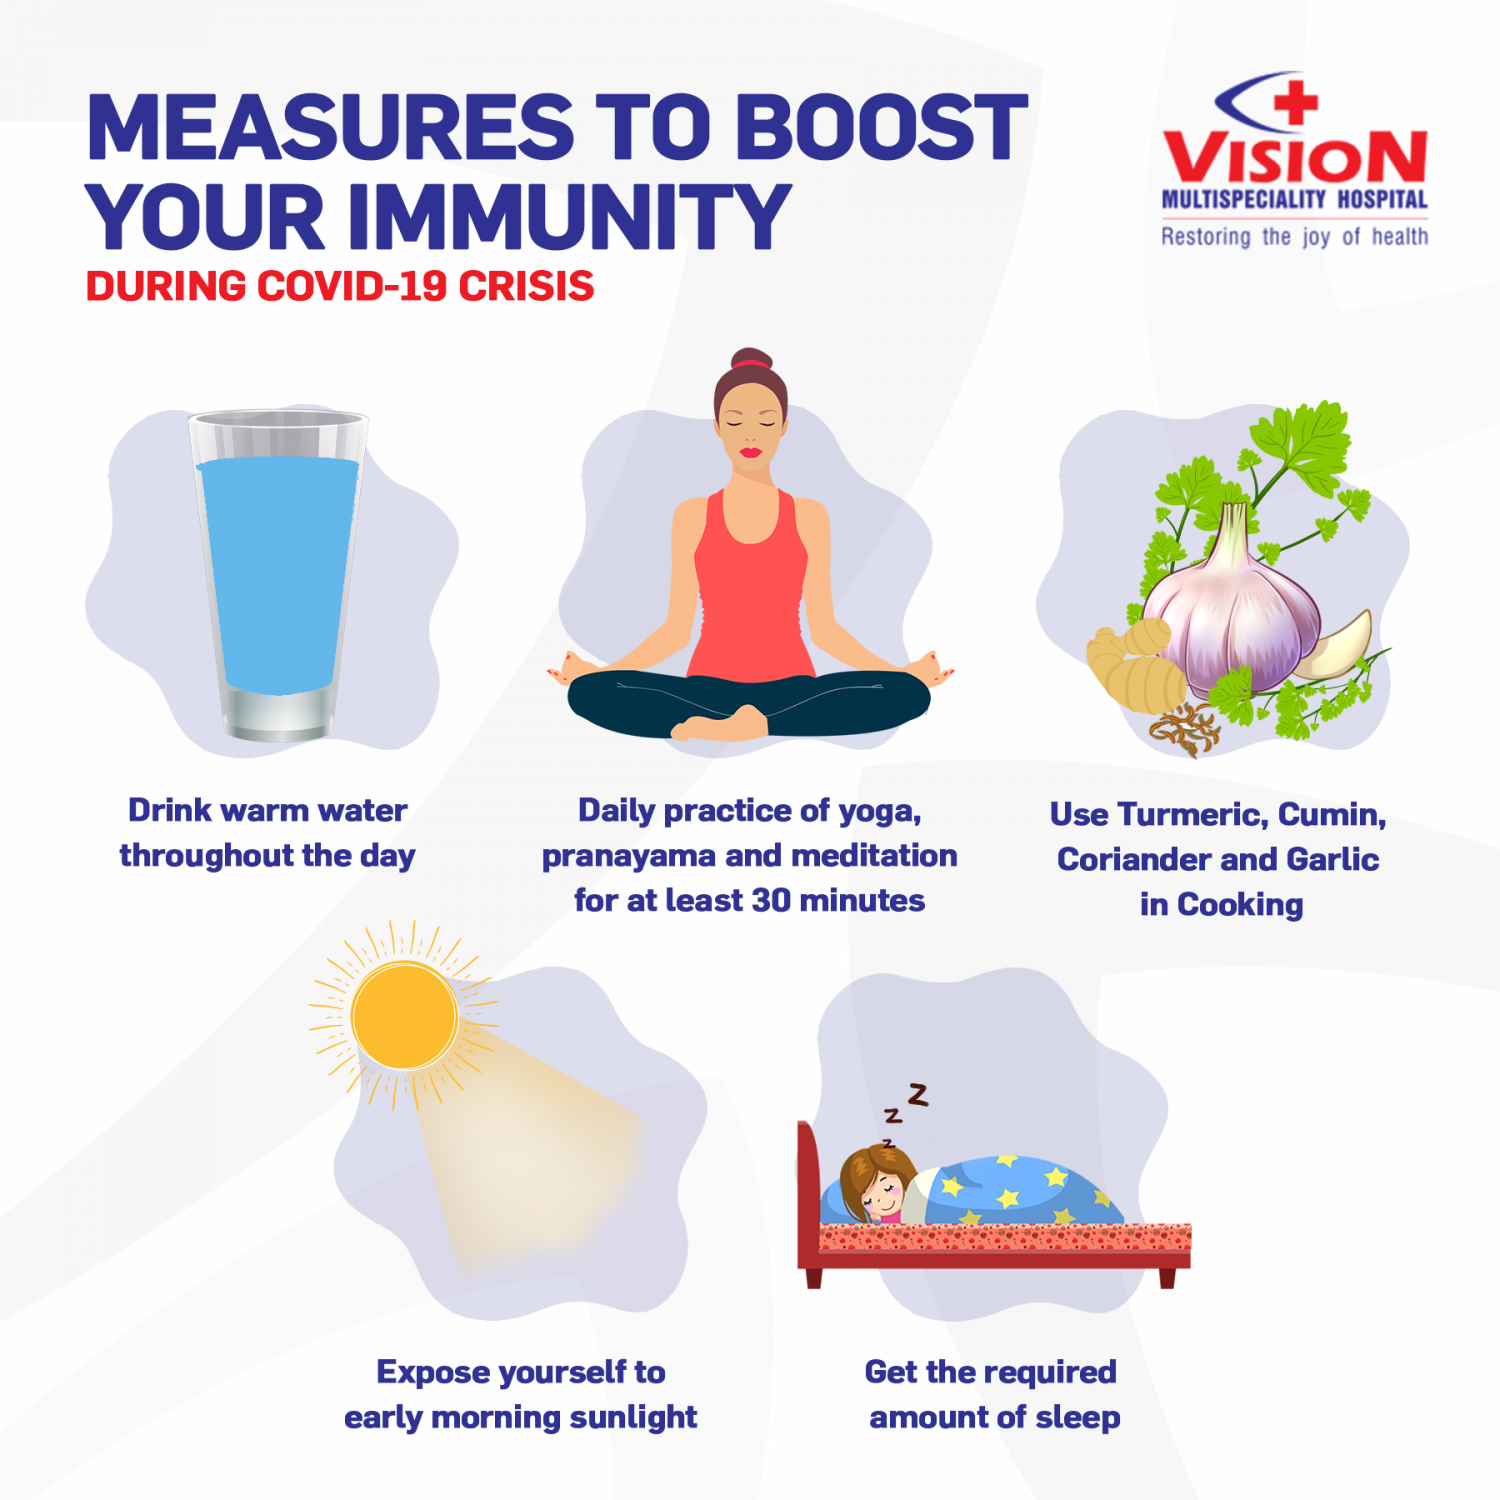 Measures to Boost Your Immunity Infographic